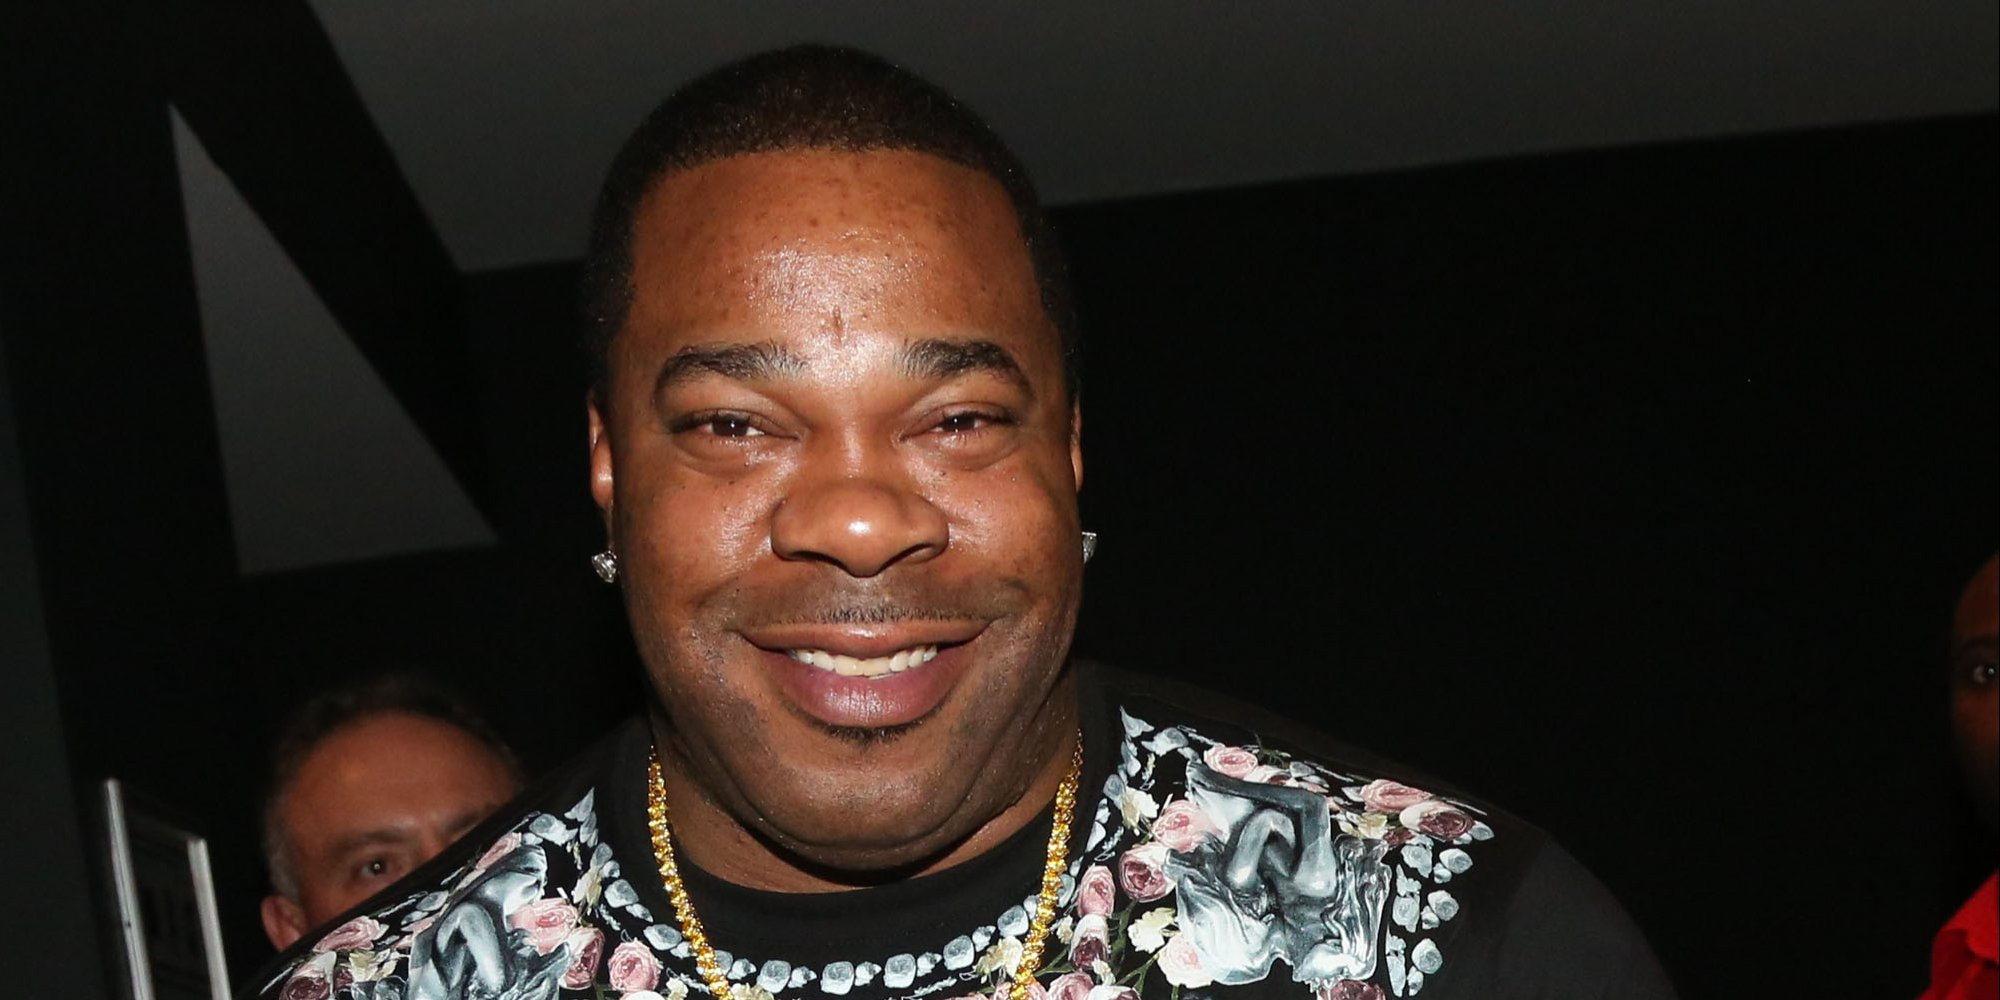 HustleTV.tv HustleTV Busta Rhymes Returns To The Music Scene After Eight Years DJ Hustle